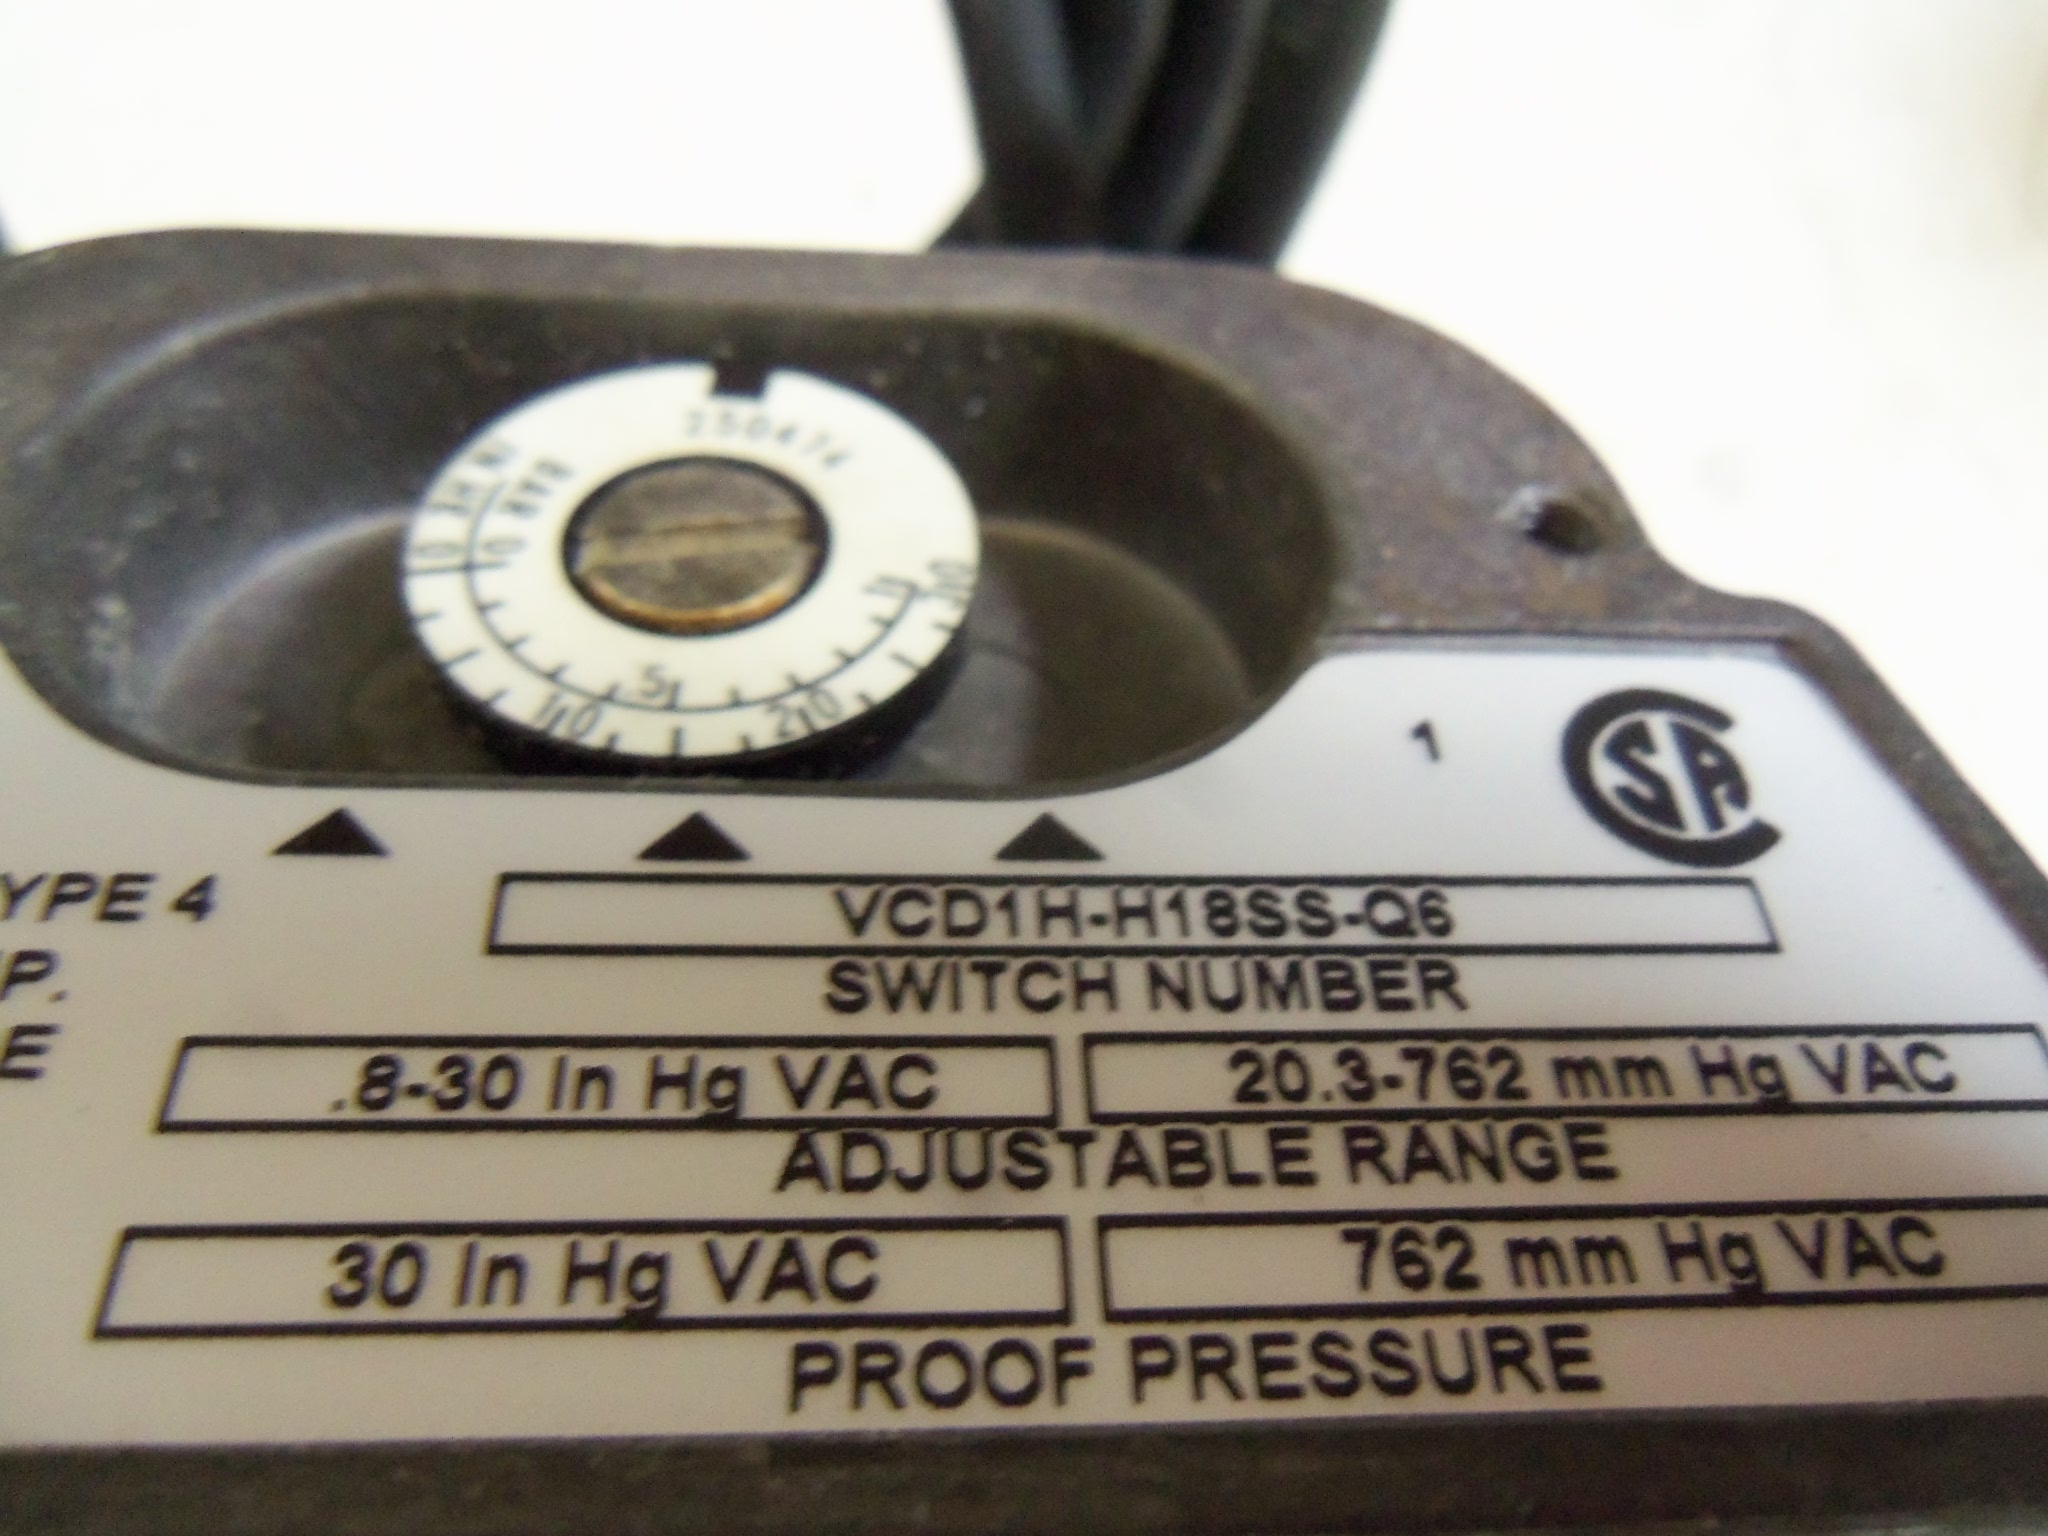 Barksdale Vcd1h H18ss Q6 Pressure Or Vacuum Actuated Switch Used Diaphragm